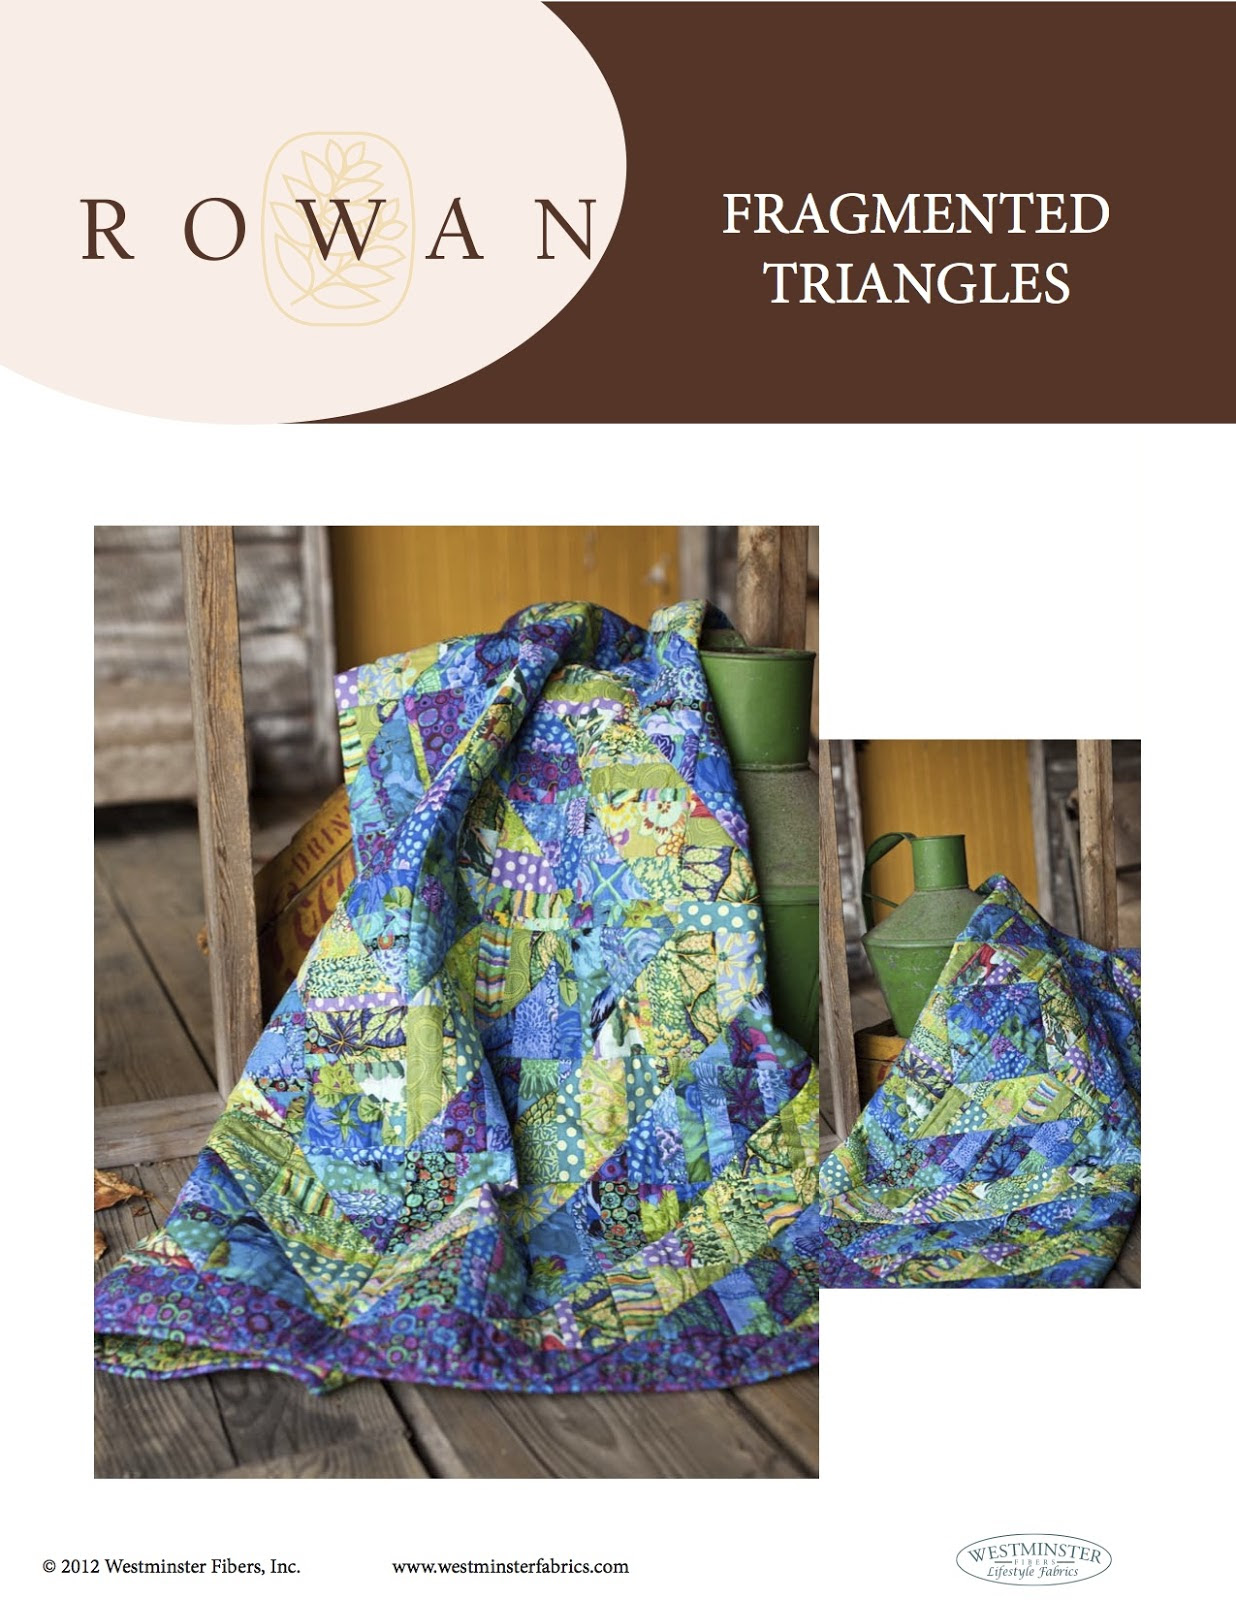 Rowan Fragmented Triangles Kaffe Fassett